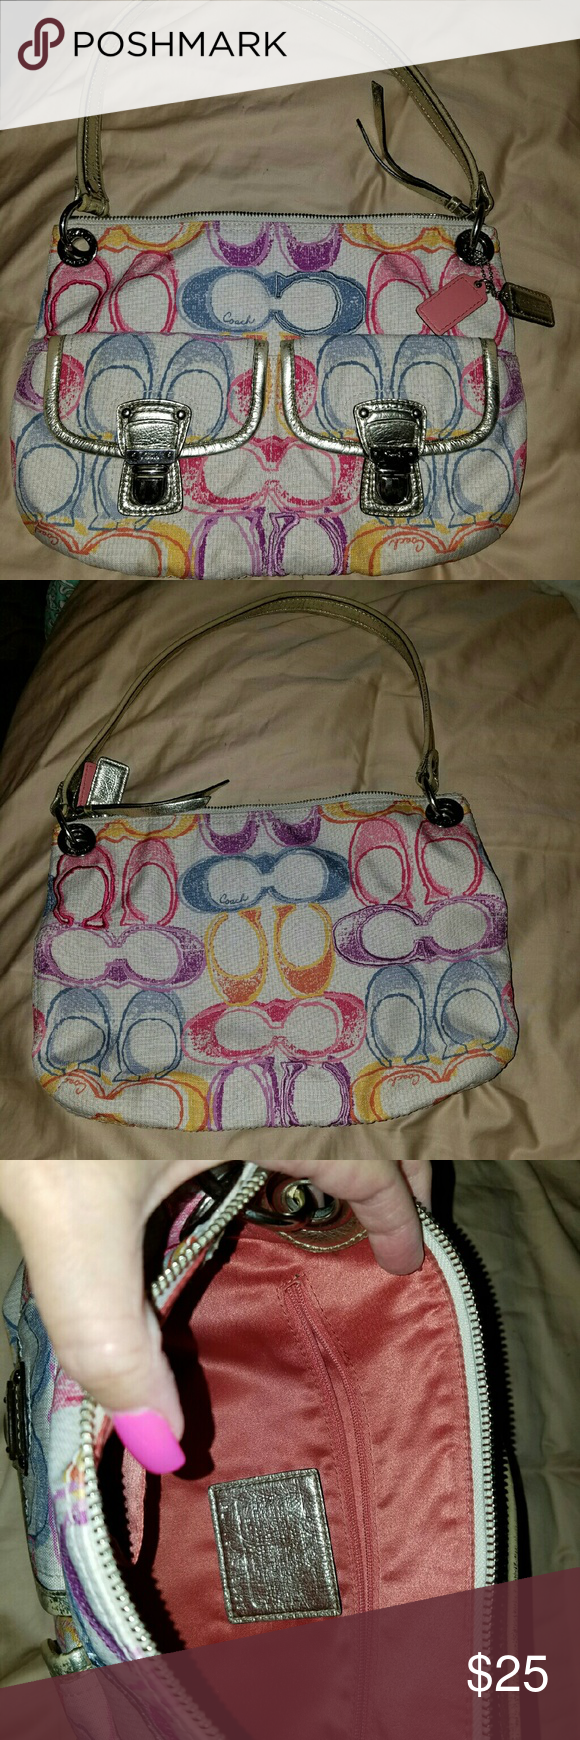 Coach Purse Great Condition.   Just a little dirty.  Not sure how to clean.  Addl pic showing dirt.  Not stained...just needs a good cleaning. Coach Bags Hobos